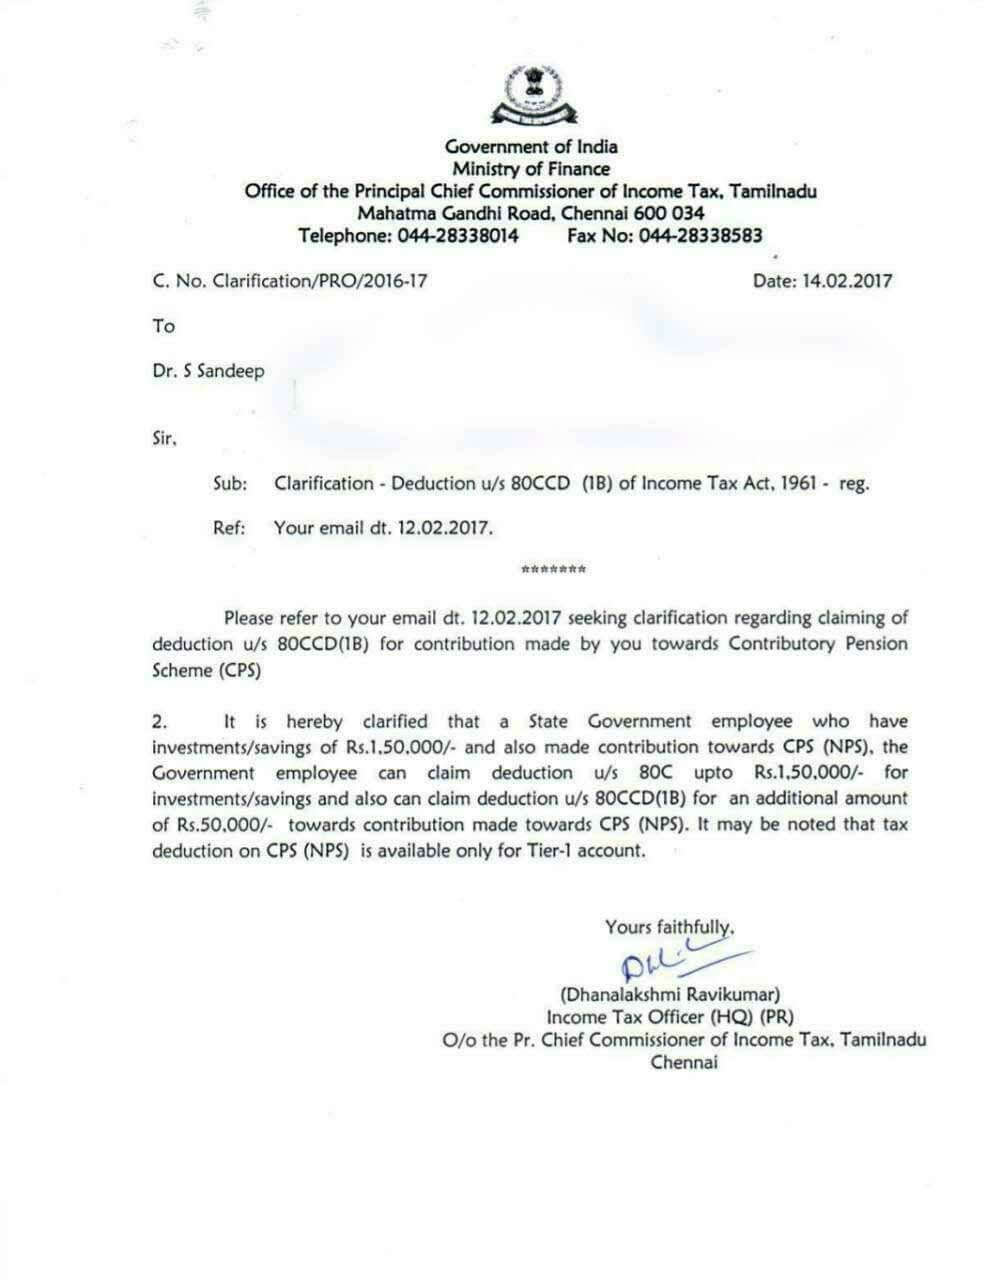 In come tax cps deduction under 80ccd 1b finance department letter in come tax cps deduction under 80ccd 1b finance department letter upto 150000 aiddatafo Choice Image